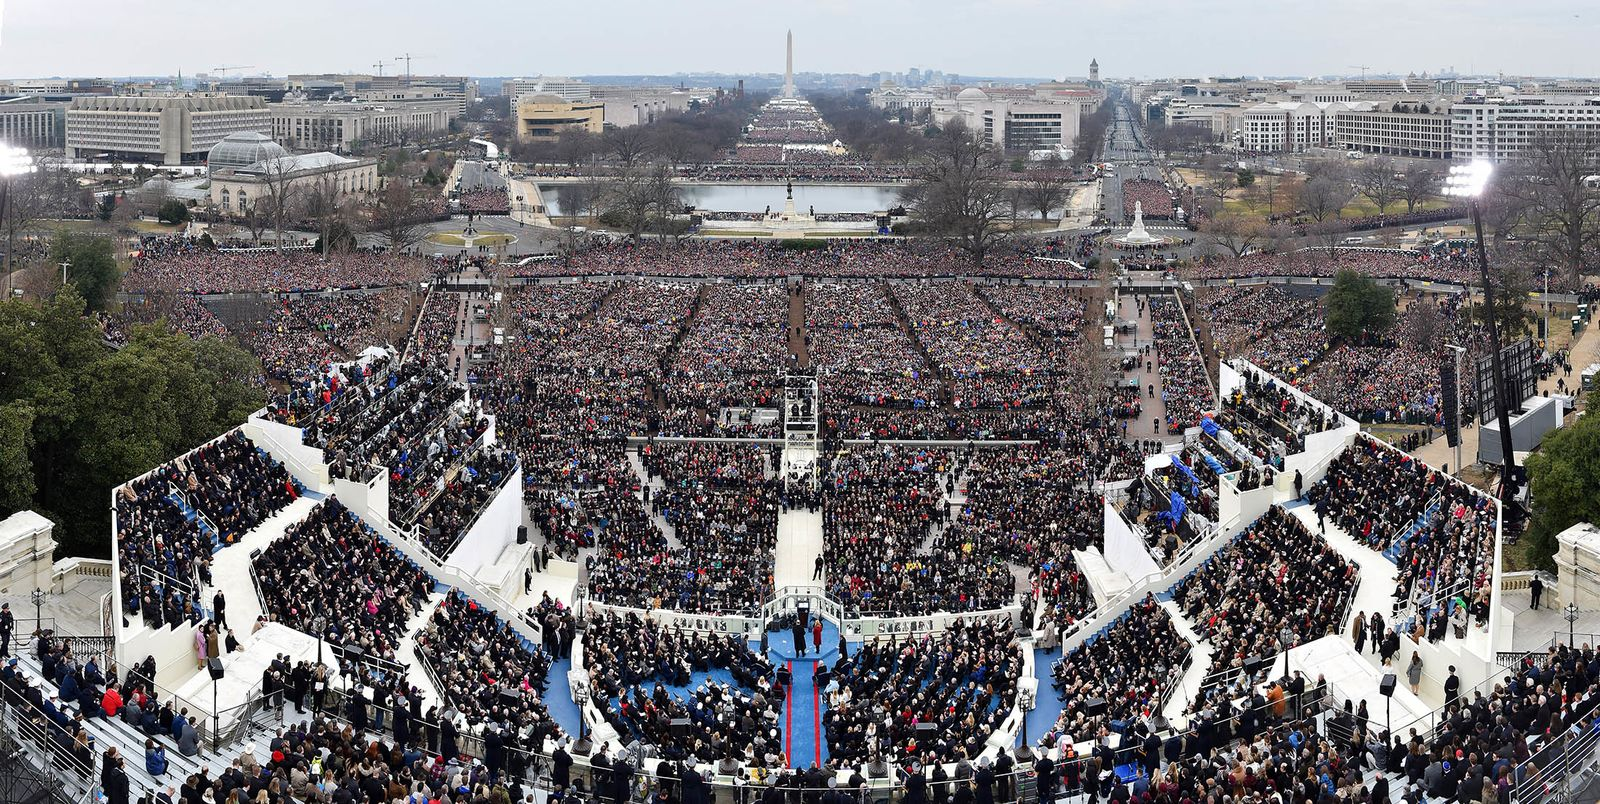 A panoramic view of the 58th presidential inauguration in Washington, D.C., U.S., on Friday, Jan. 20, 2017. Donald Trump became the 45th president of the United States today, in a celebration of American unity for a country that is anything but unified. Photographer: Ricky Carioti/Pool via Bloomberg